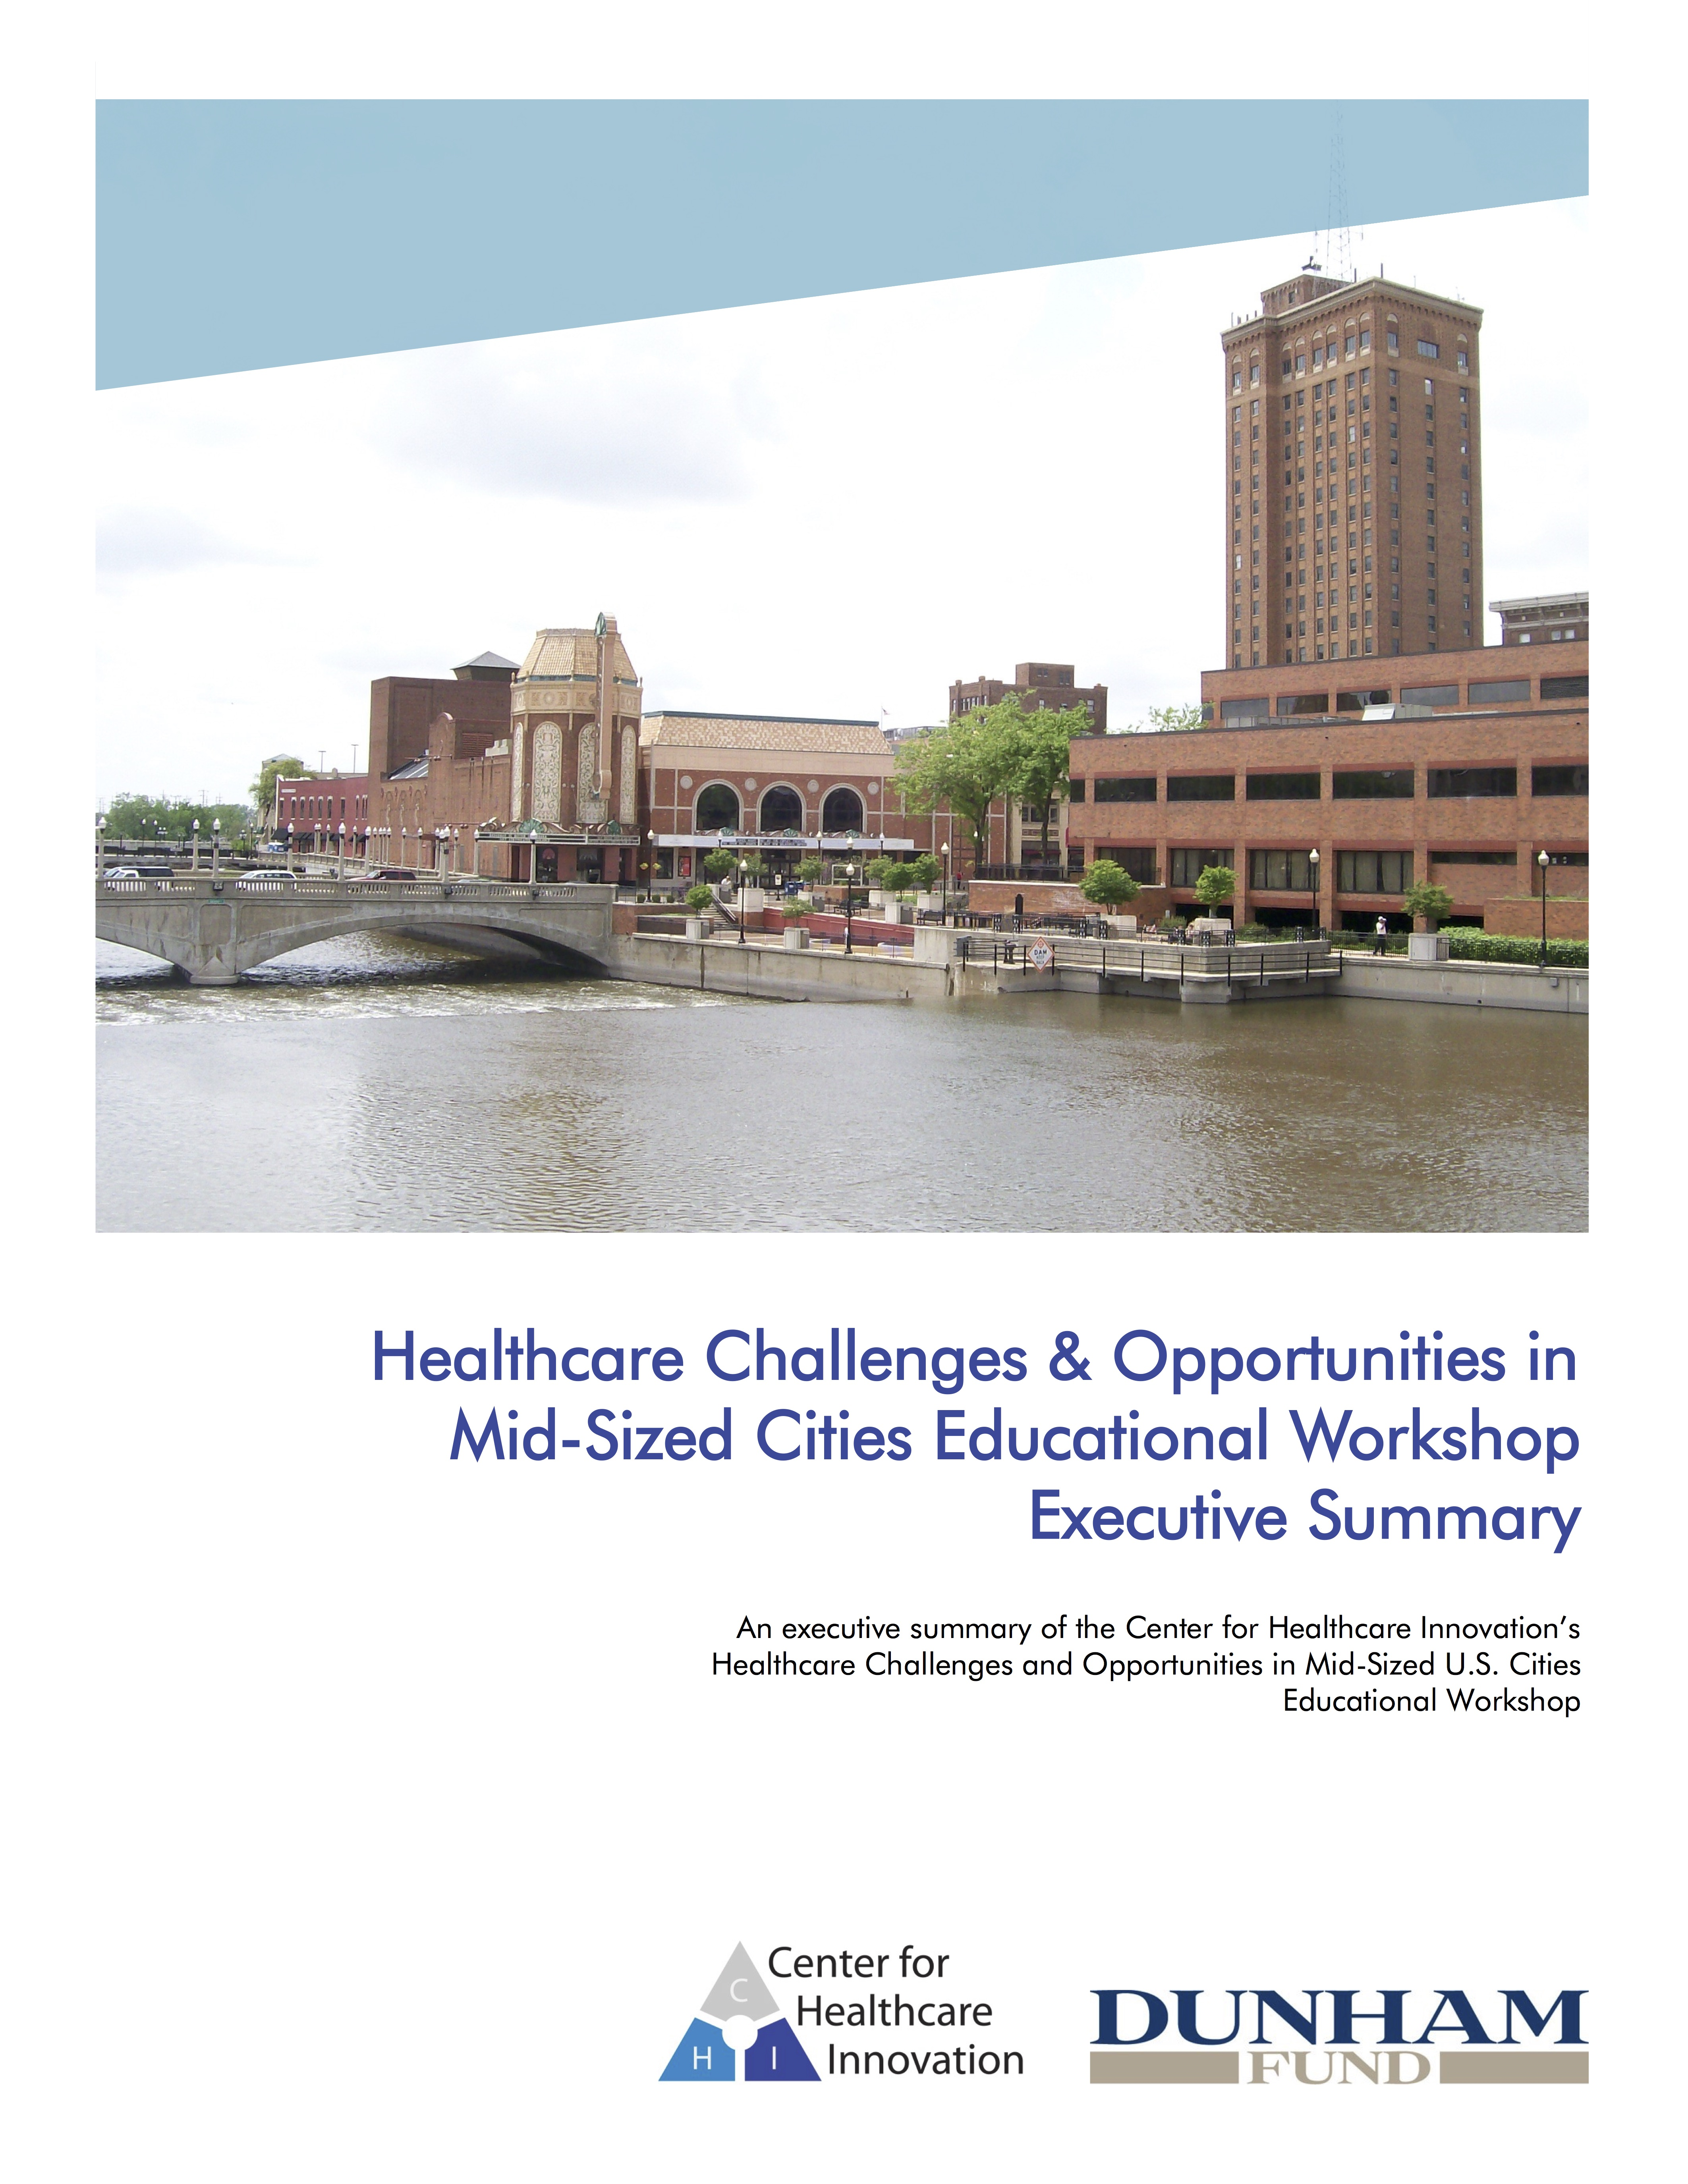 Healthcare in Aurora Workshop Executive Summary